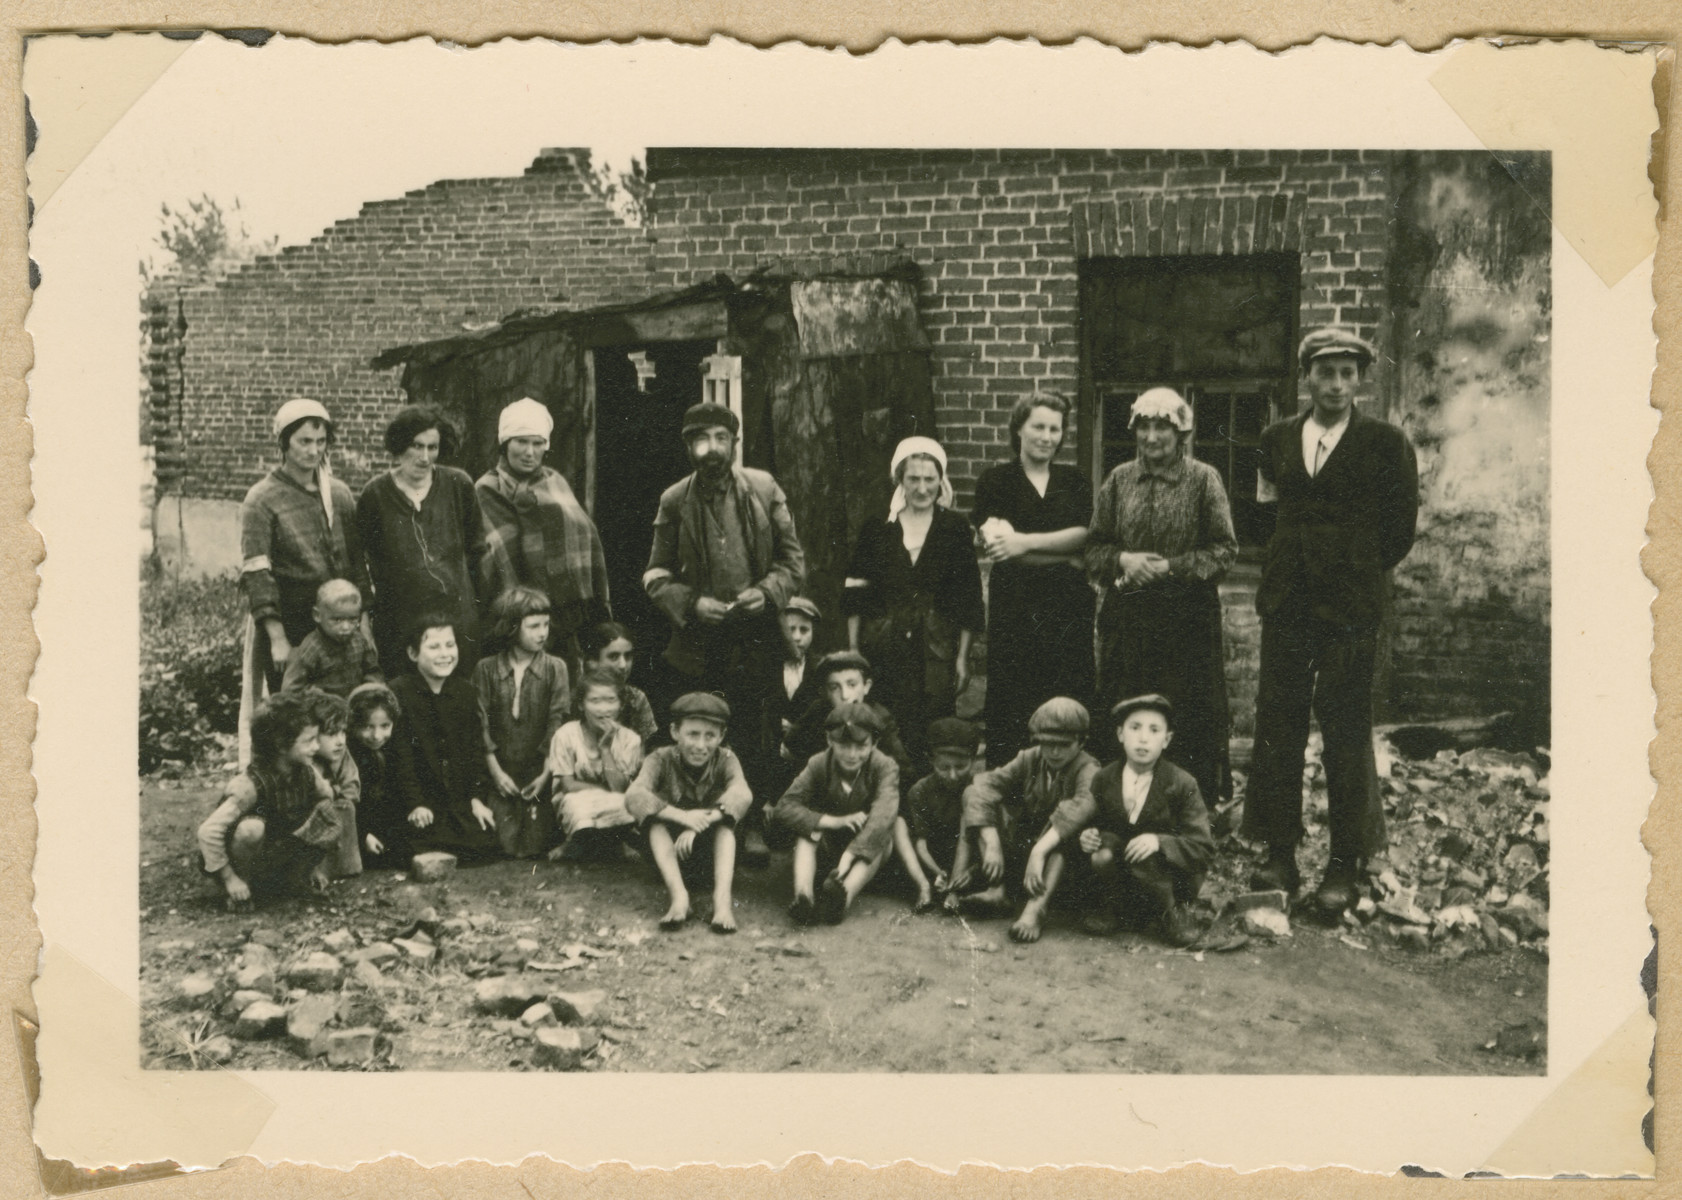 Group portrait of Jewish men, women and children in Deblin-Irena.